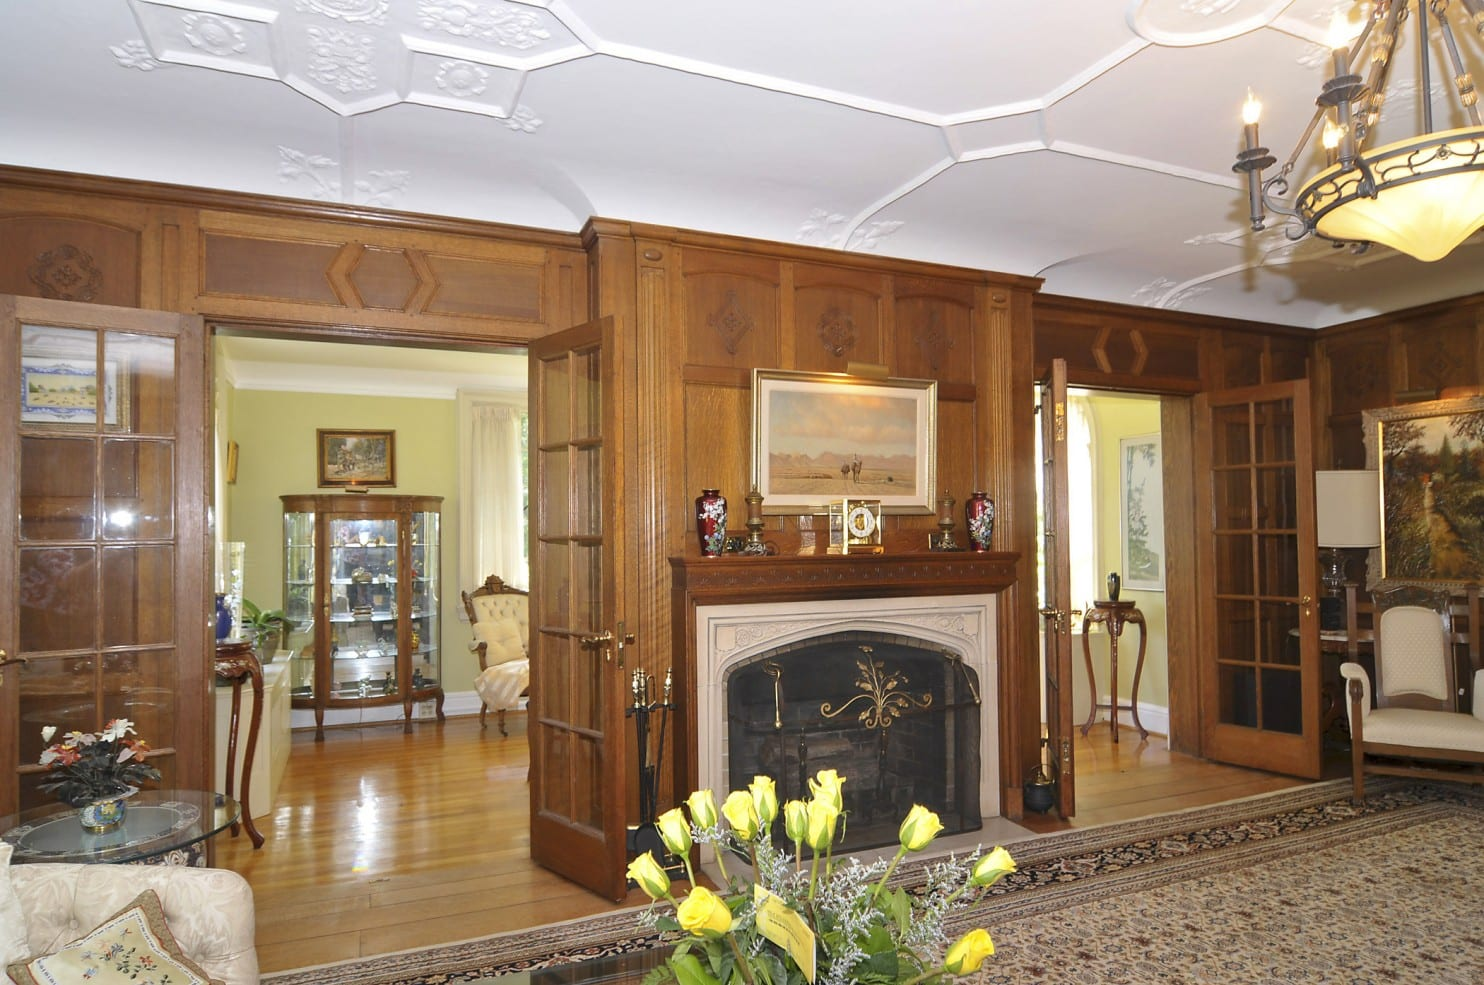 (Photo by HomeVisit) The living room has a cast stone fireplace with a chestnut mantel.